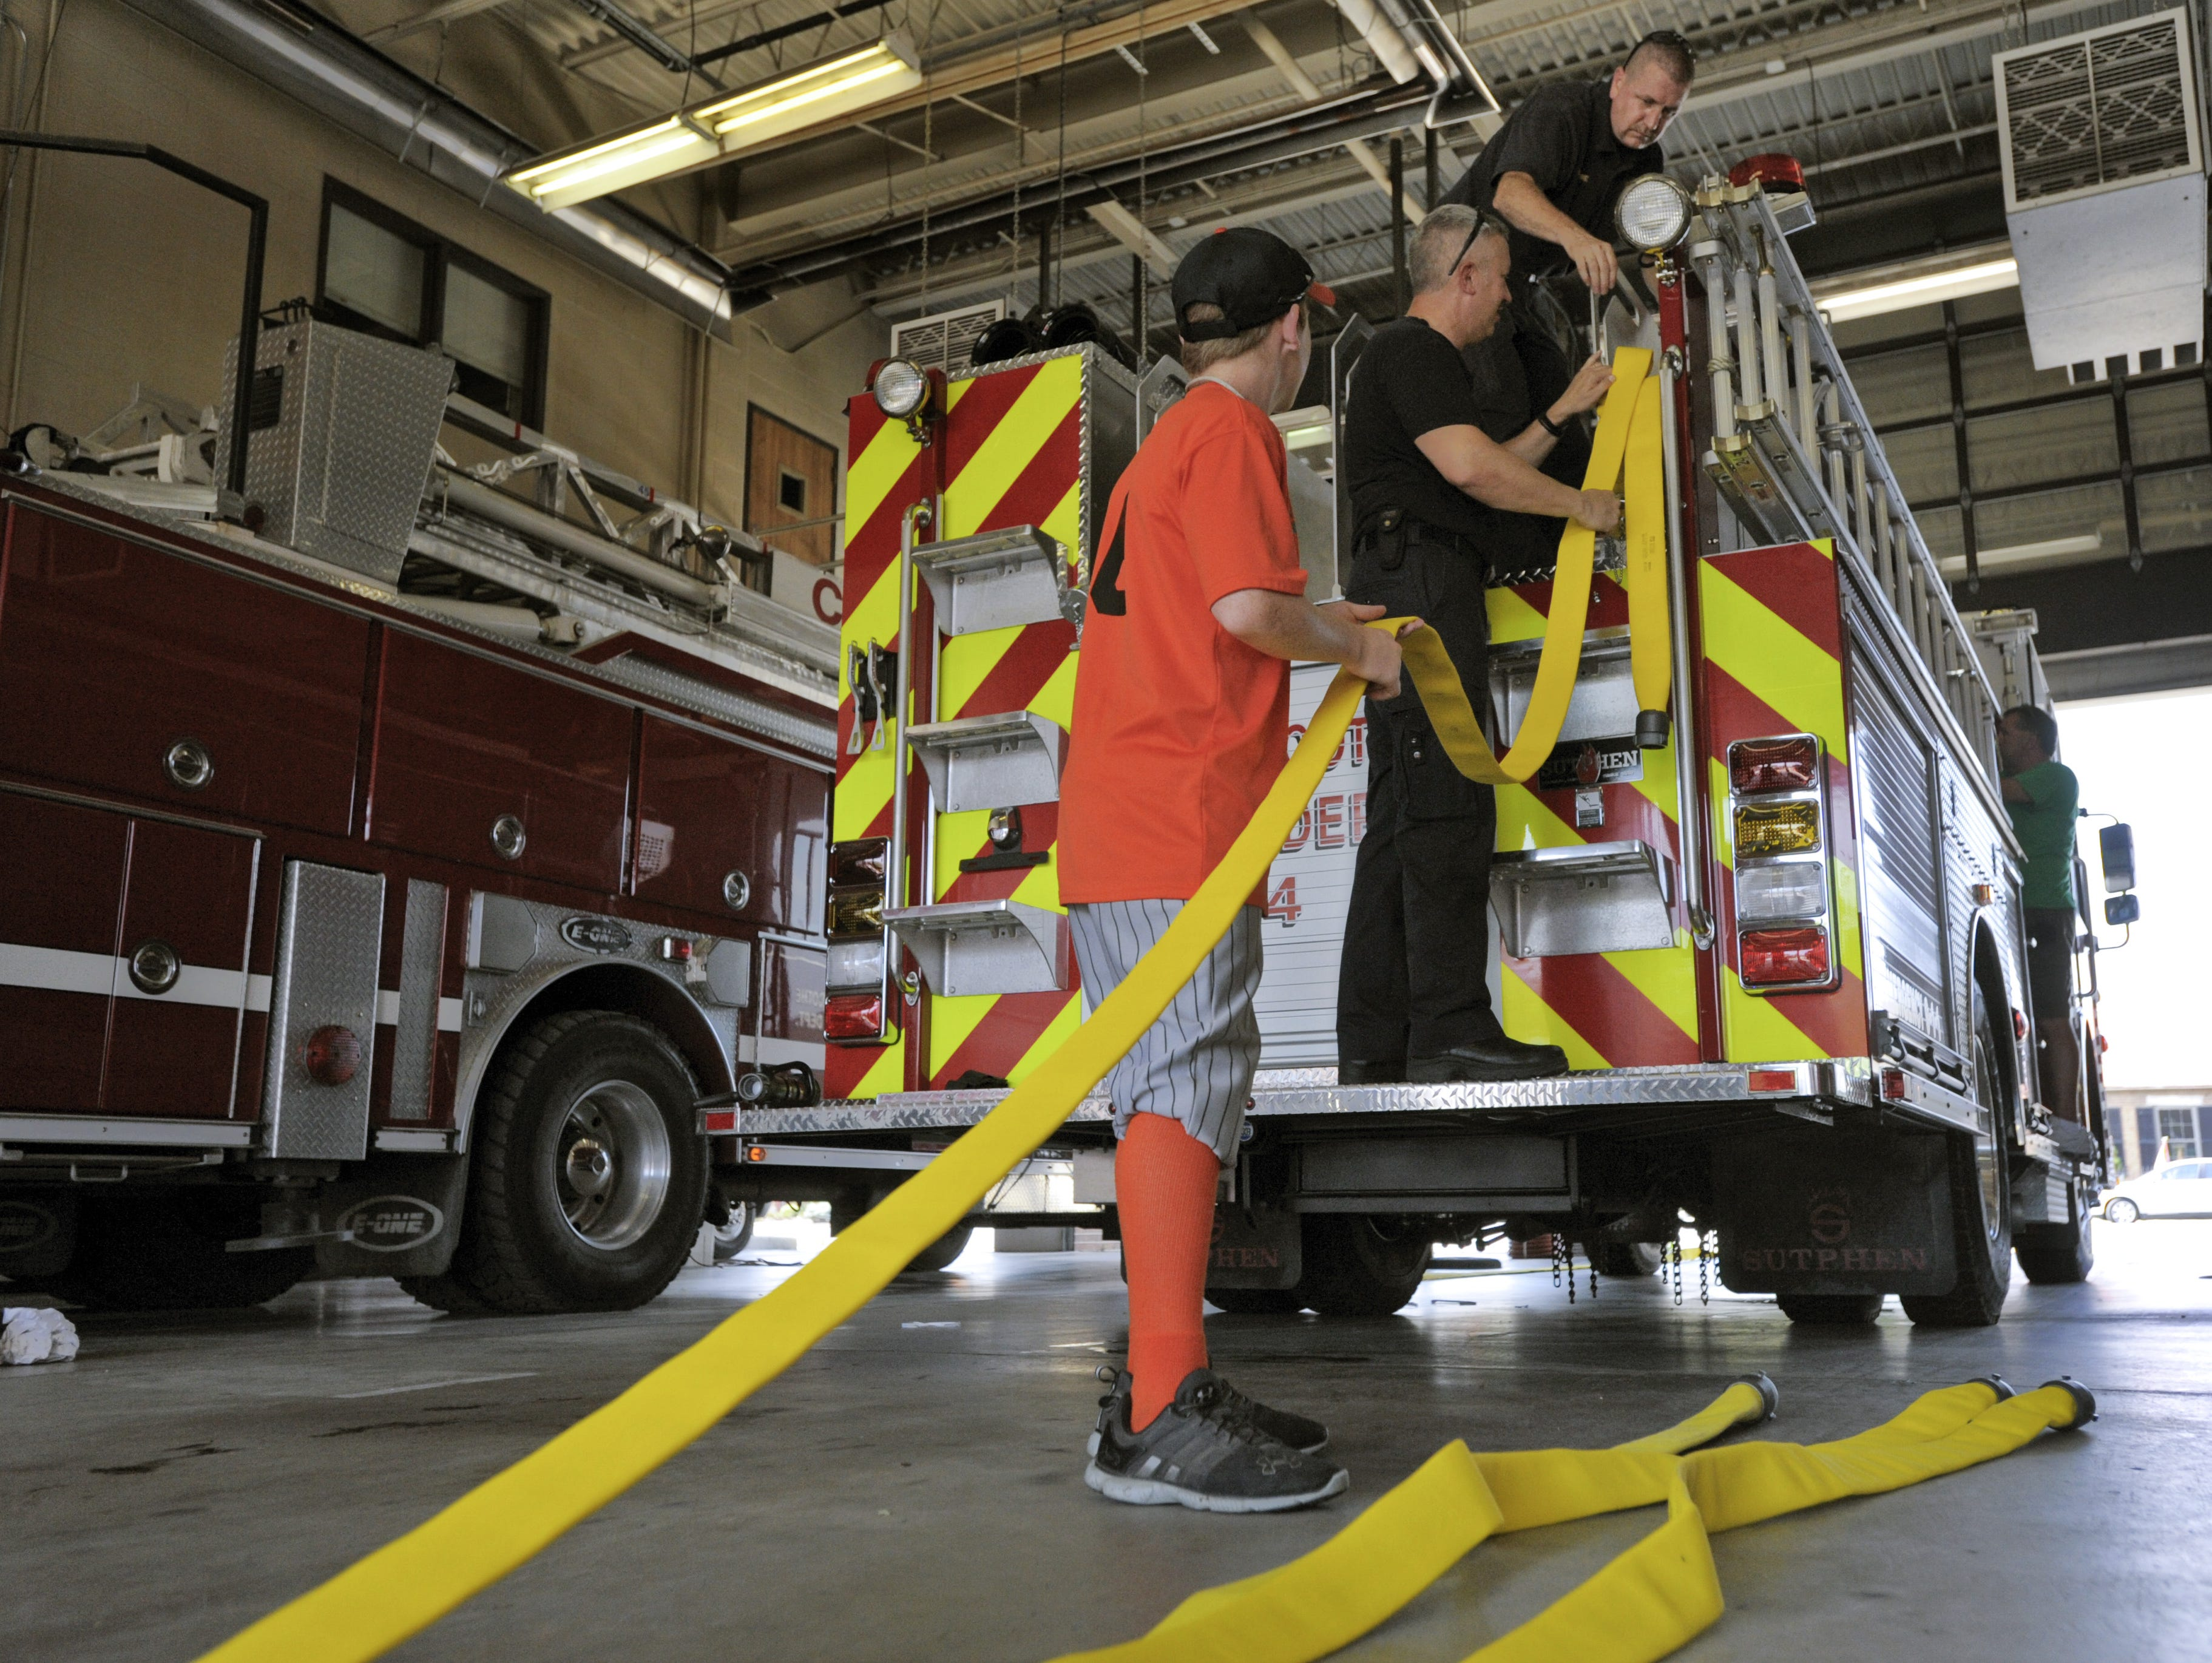 Shane Gibbs, left, helps then Interim Fire Chief Jeff Creed, center and Firefighter Tim Whitacre add fire hose to the city's new fire truck in 2012 at the Chillicothe Fire Department on East Water Street.